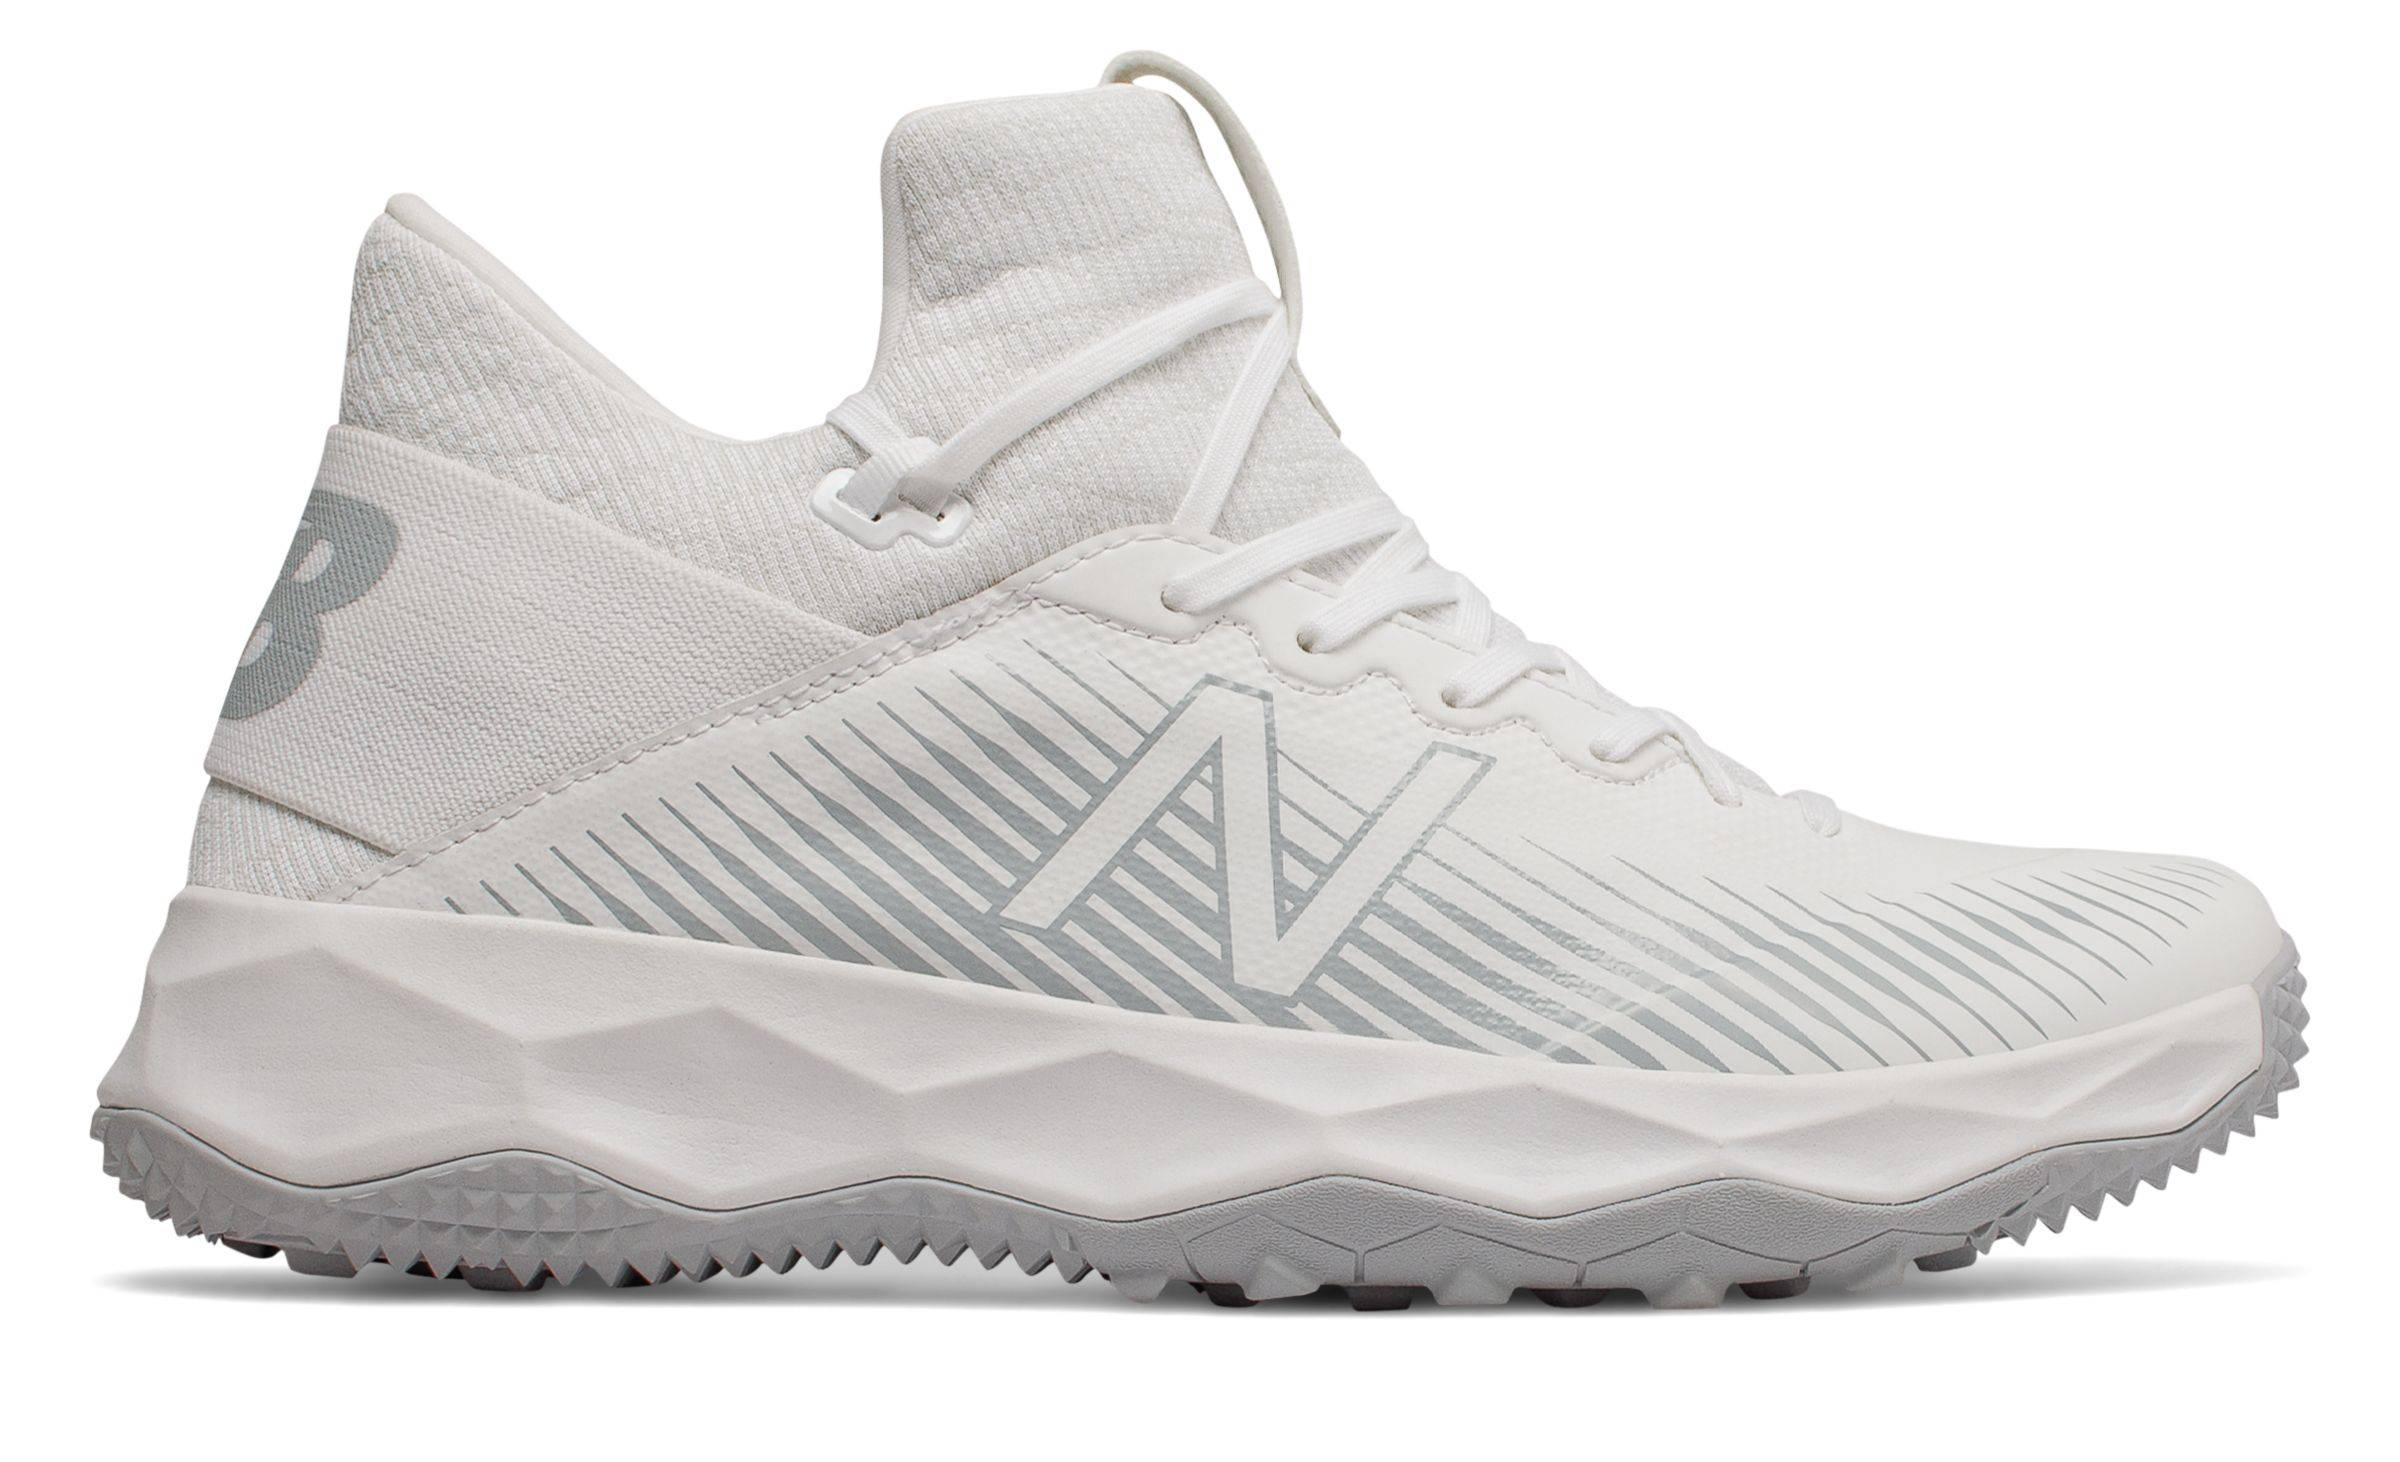 New Balance Men's FreezeLX 2.0 Turf Lacrosse Shoes White with Silver  - White with Silver - Size: 14